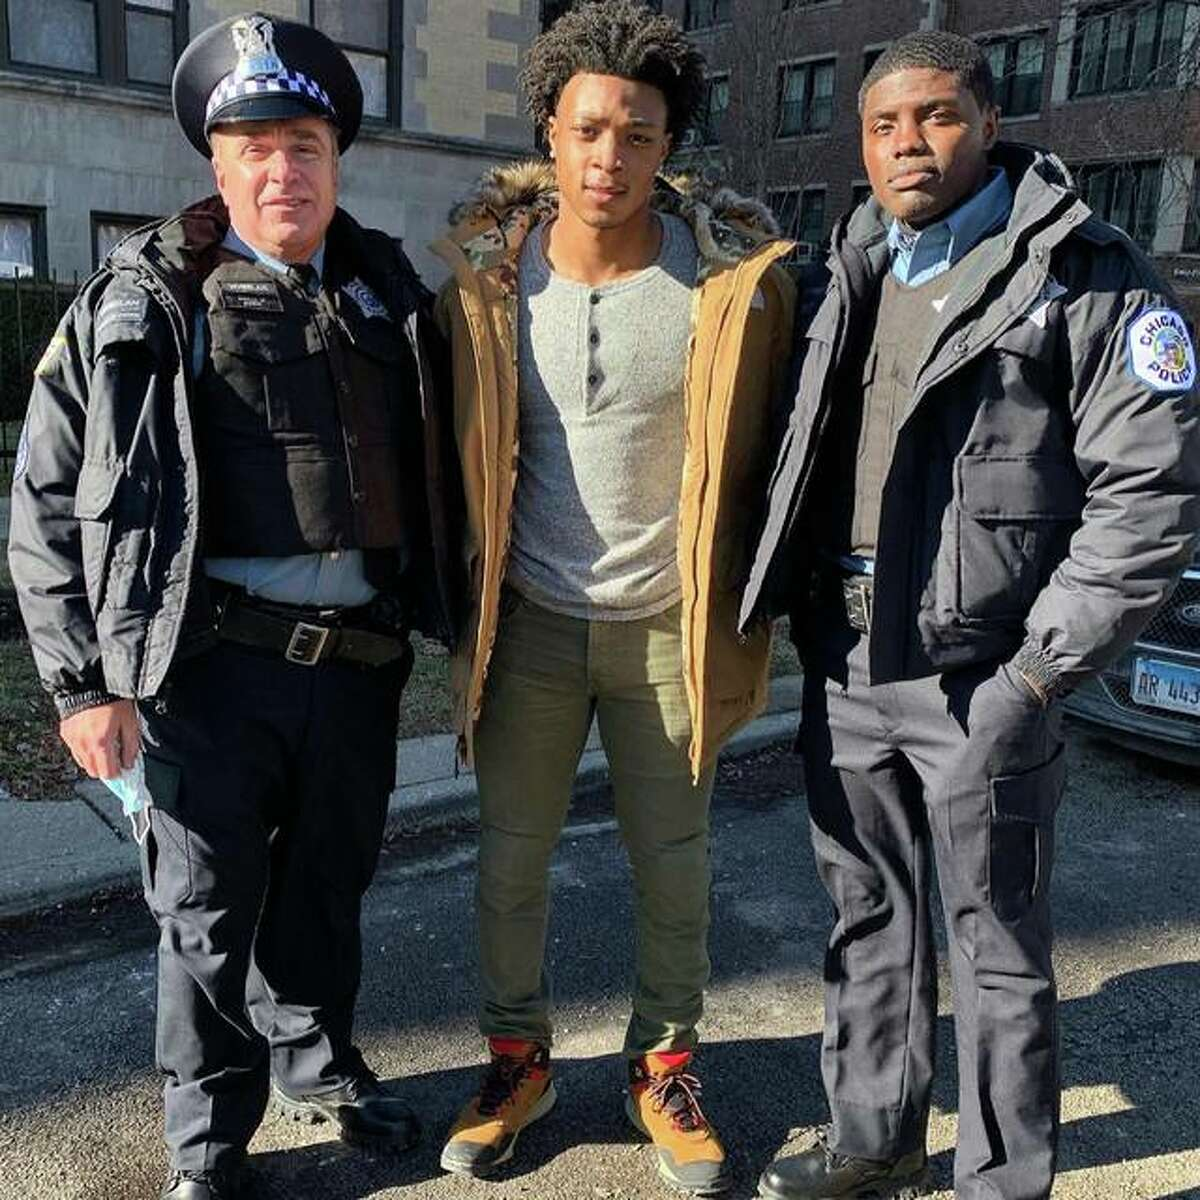 Edwardsville High School graduate Shawn Roundtree Jr., center, is pictured with Michael Rispoli, left, and castmate from their scene in Chicago P.D.